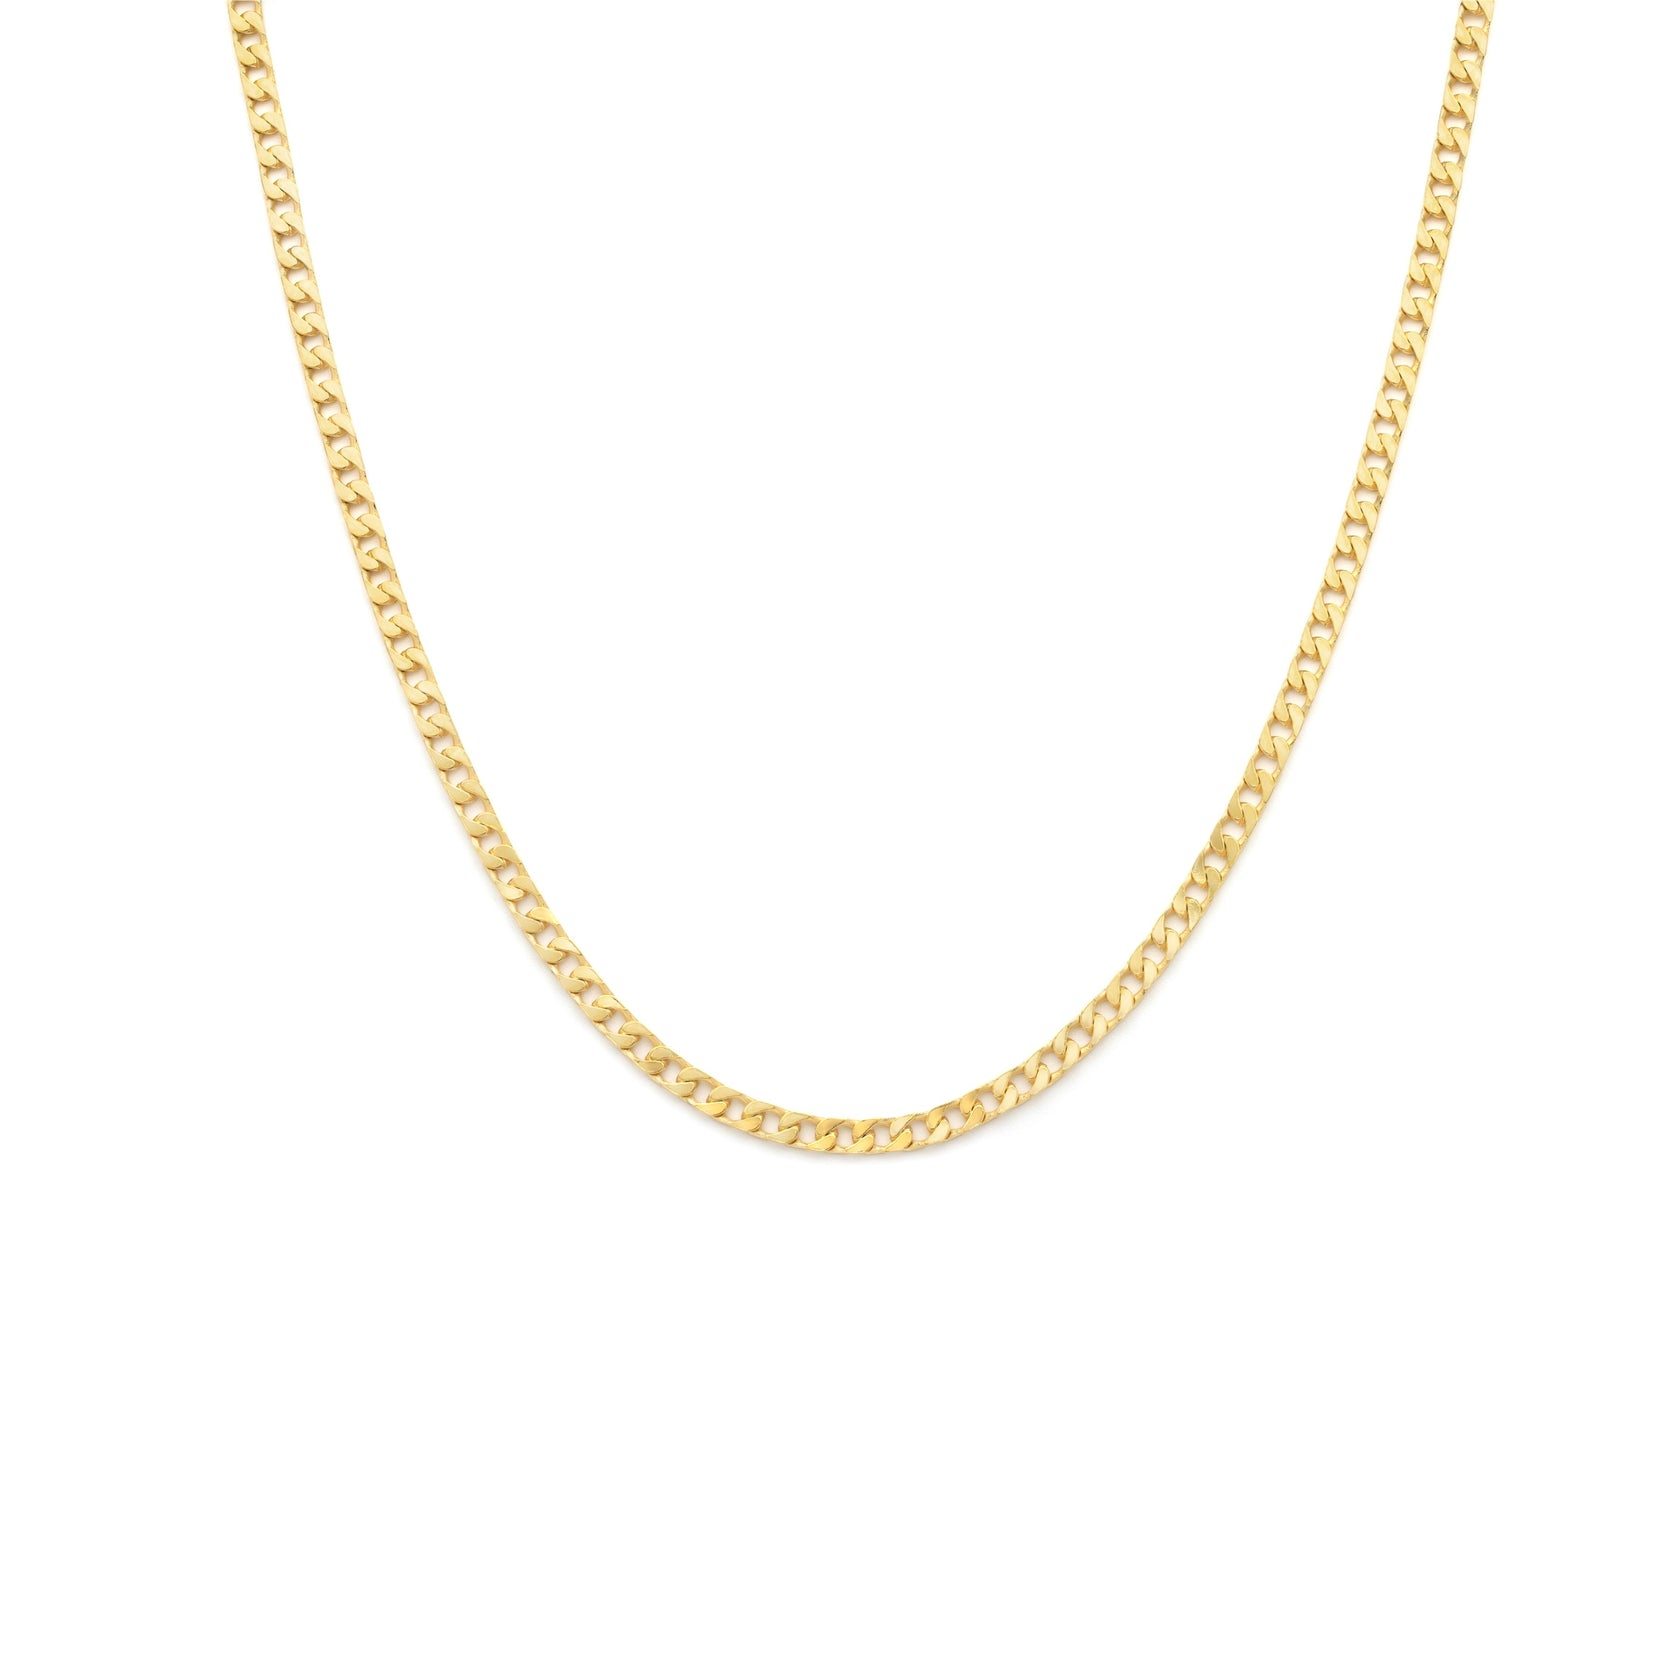 Men's Curb Chain - Gold Vermeil